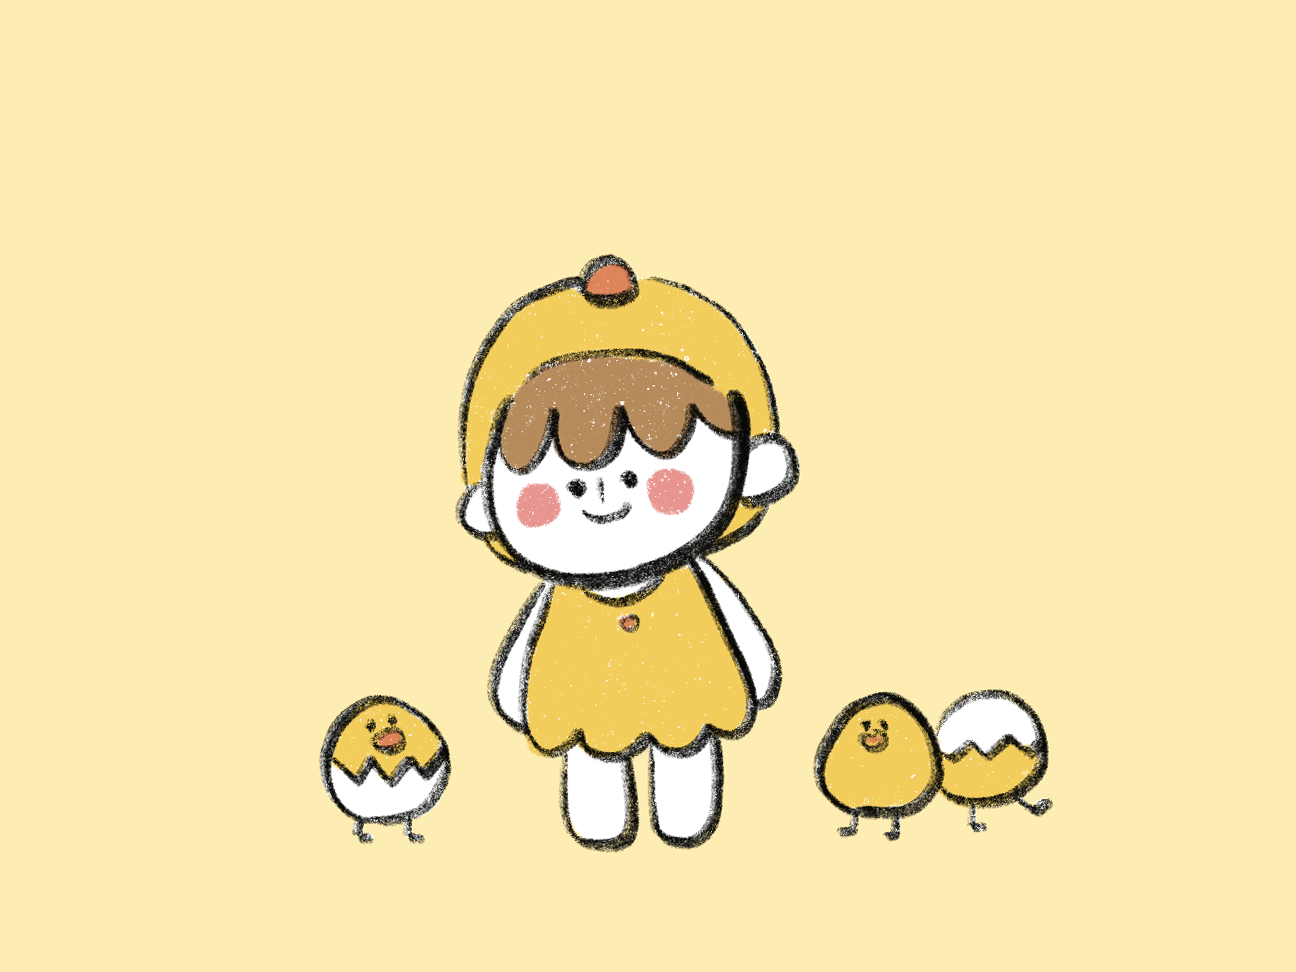 Baby chick 20181216 character 2d drawing yellow cate flat design illustration baby chick